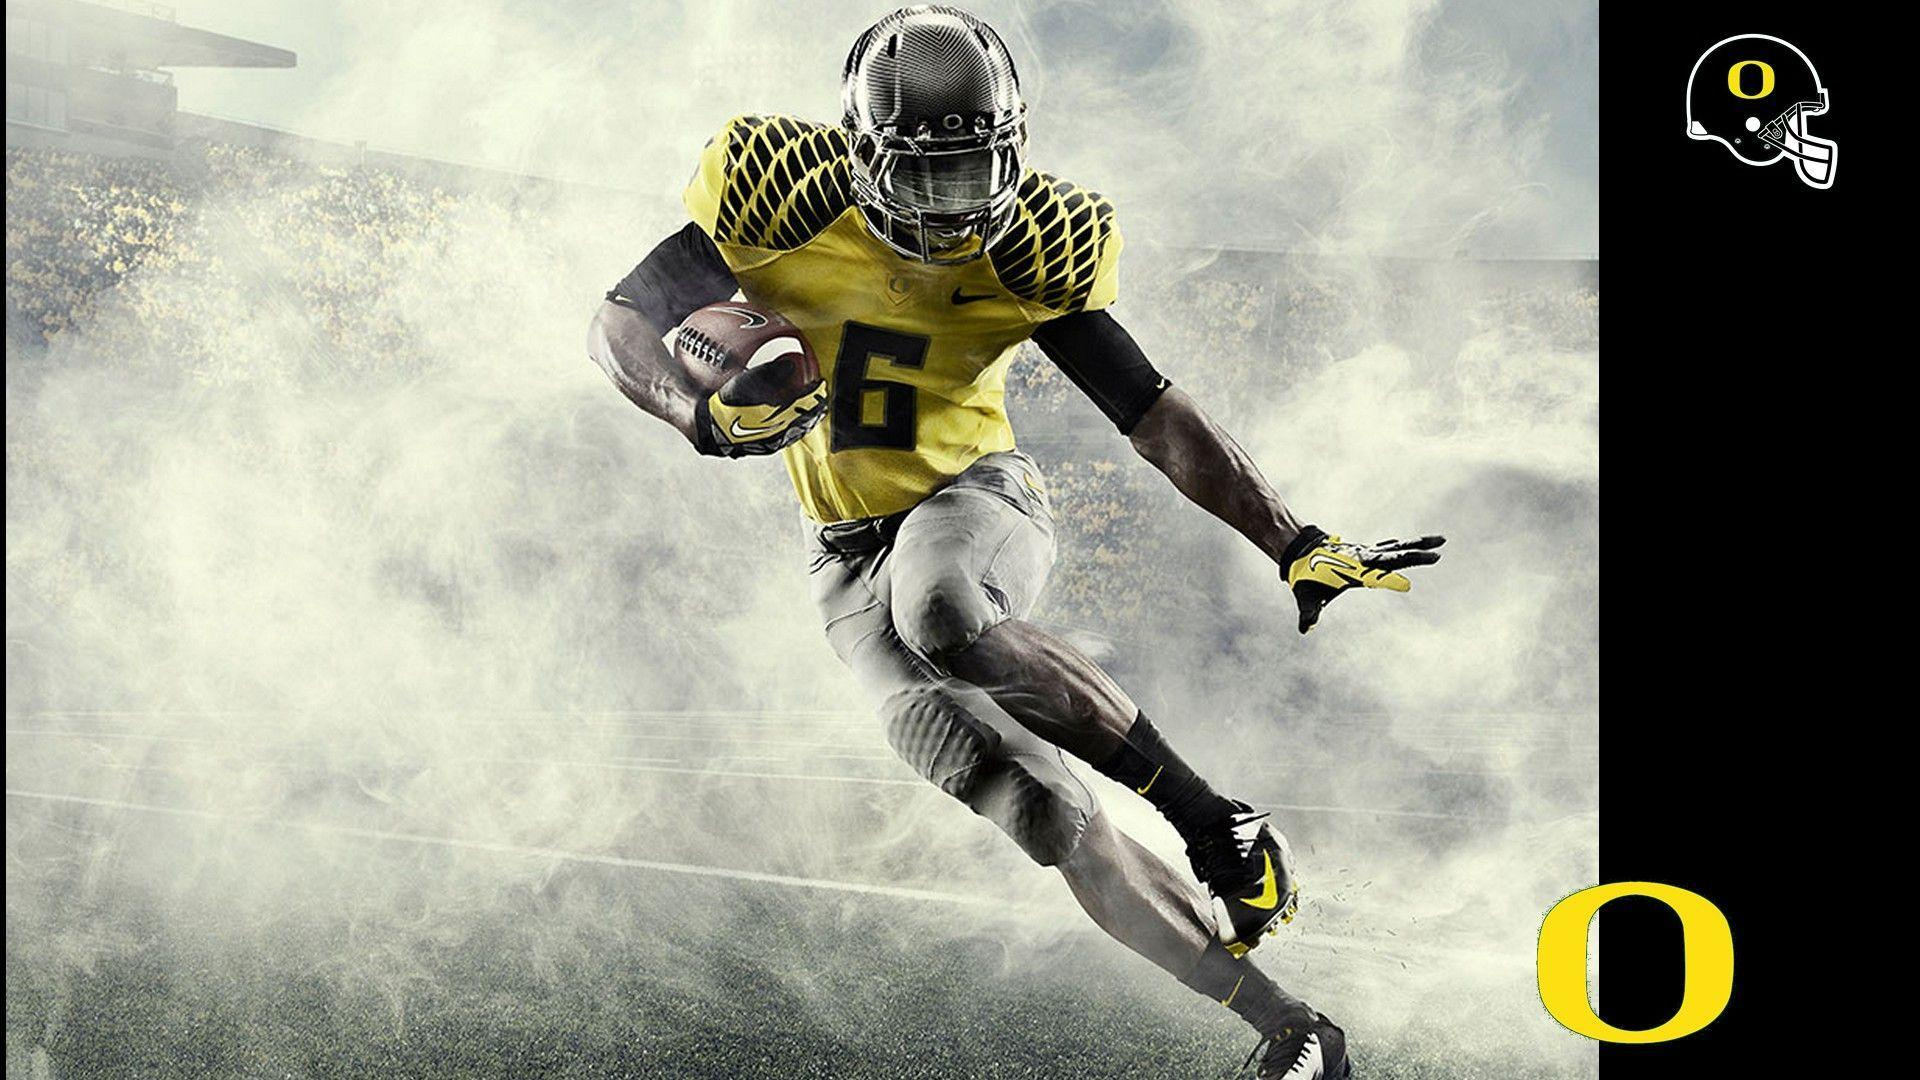 College Football Wallpapers: NCAA Football Wallpapers